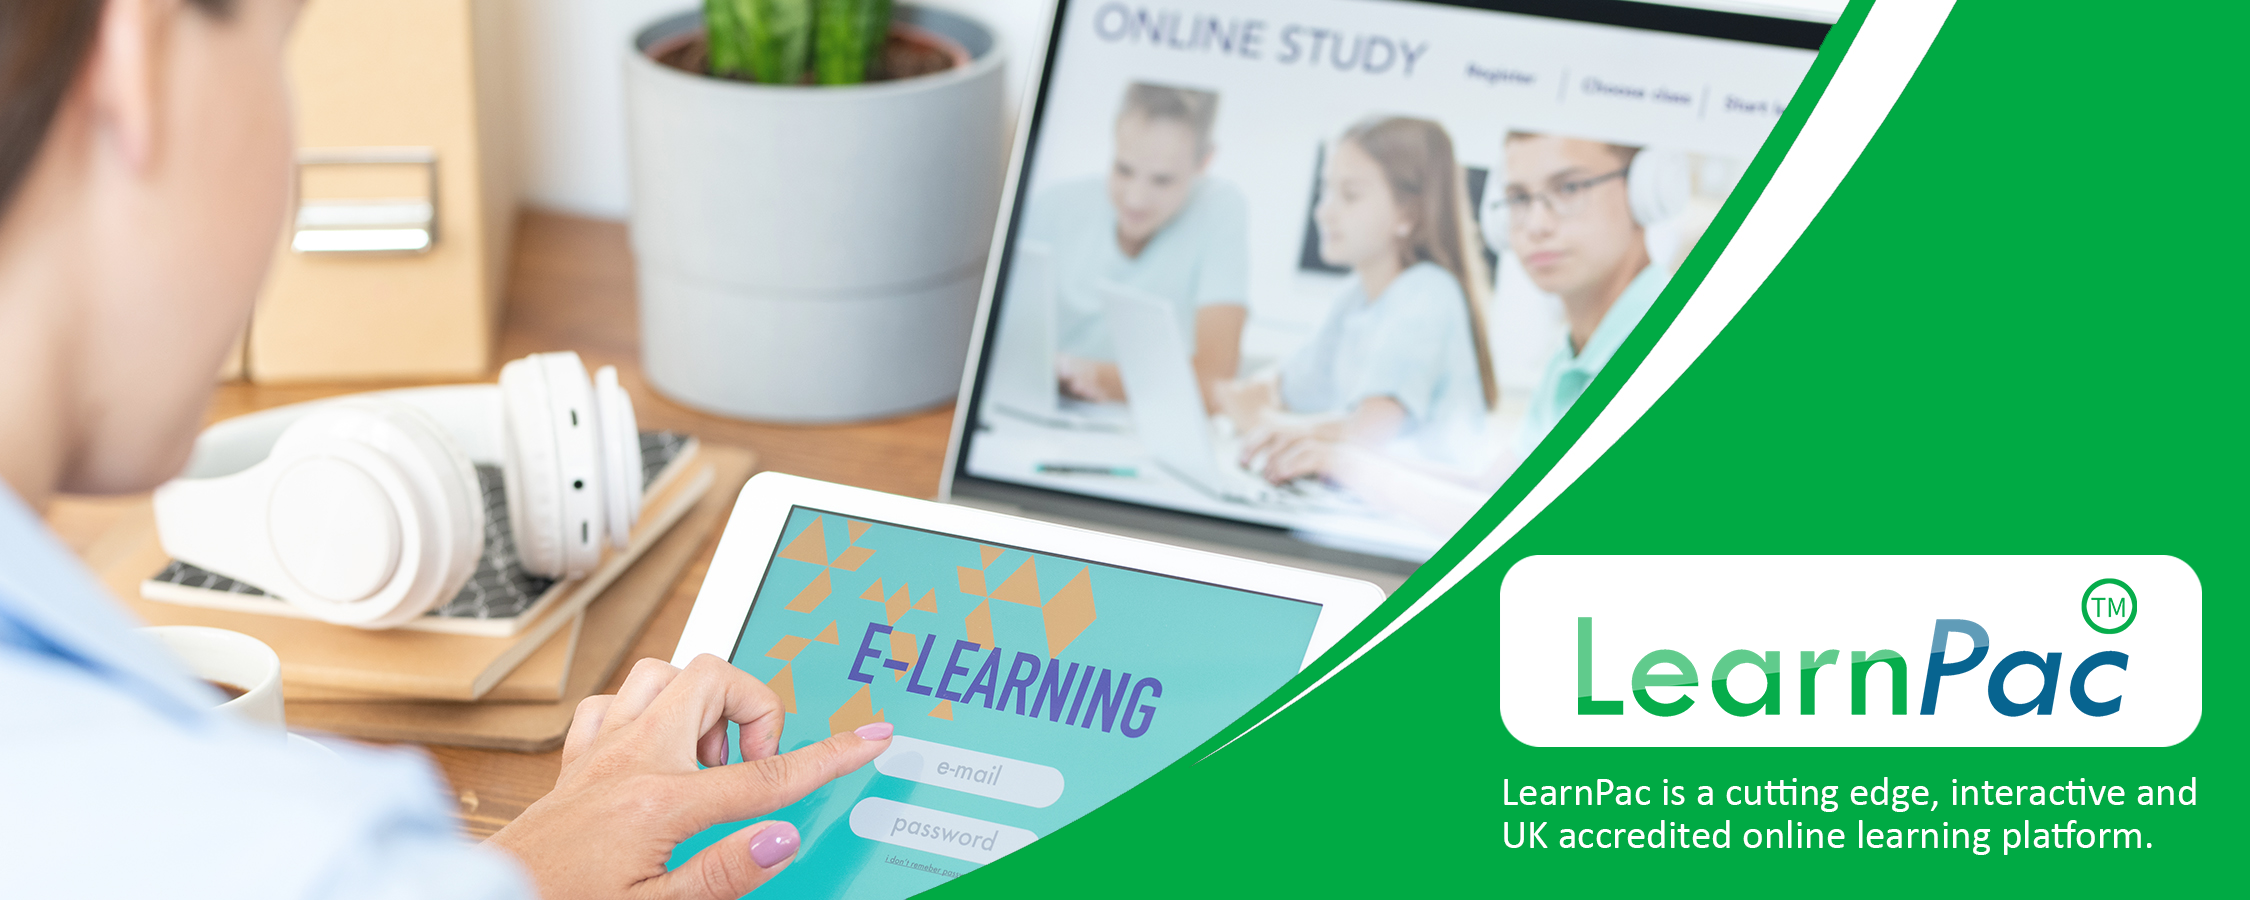 Care Certificate Standard 11 - E-Learning Courses - LearnPac Systems UK -